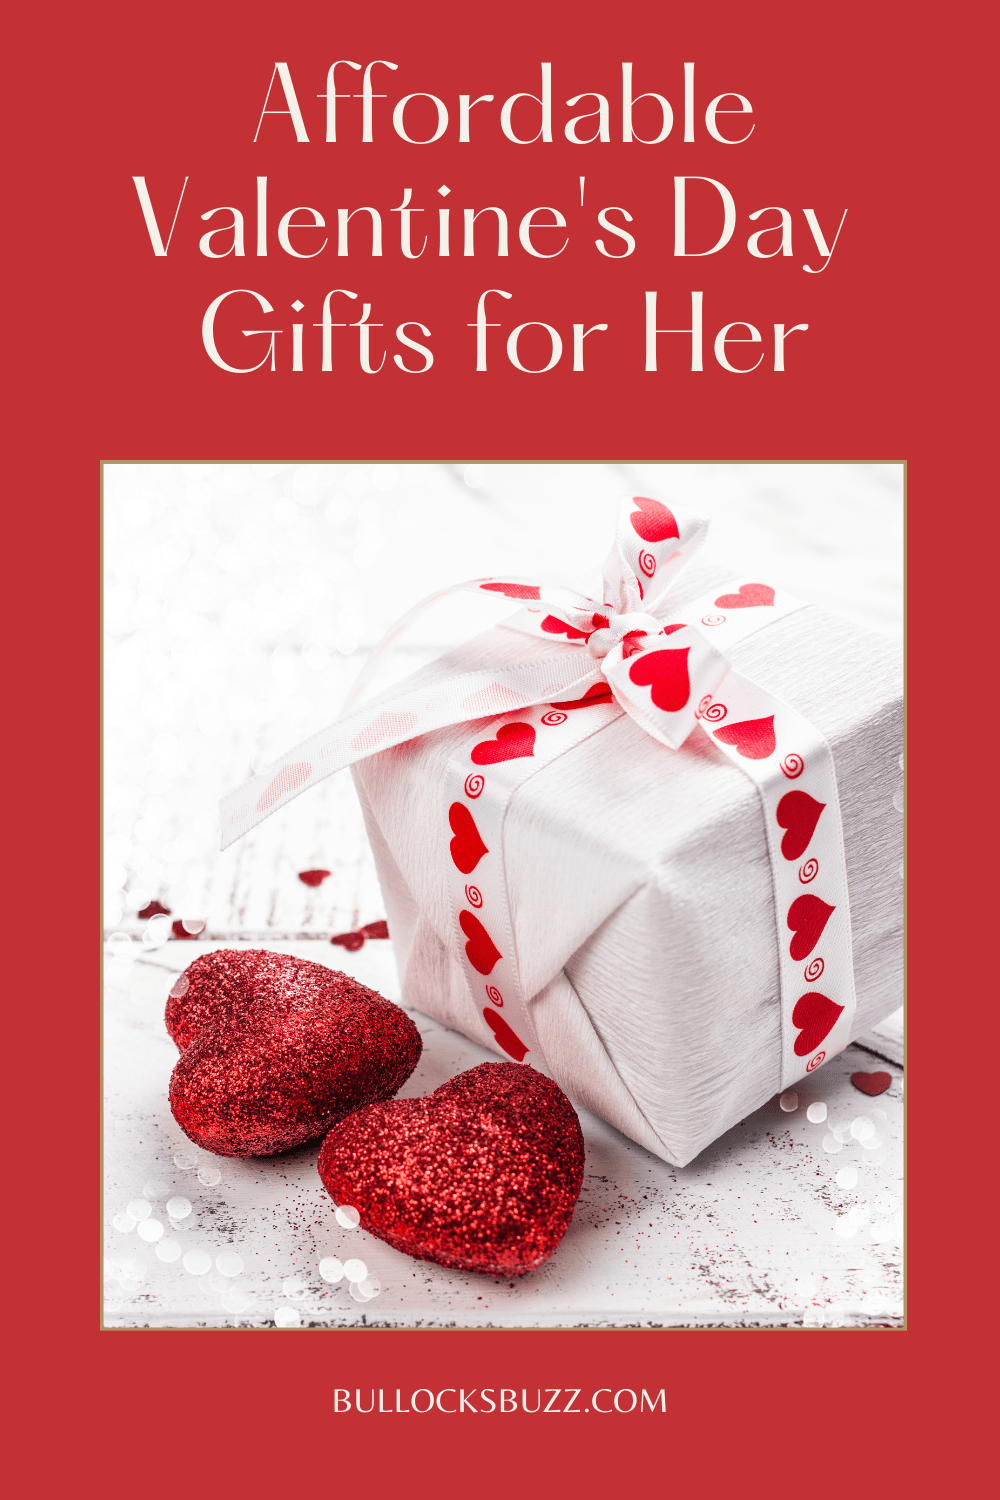 Skip the grocery store flowers, drugstore chocolates, and gift cards and give her one of these affordable Valentine's Day Gifts for her!